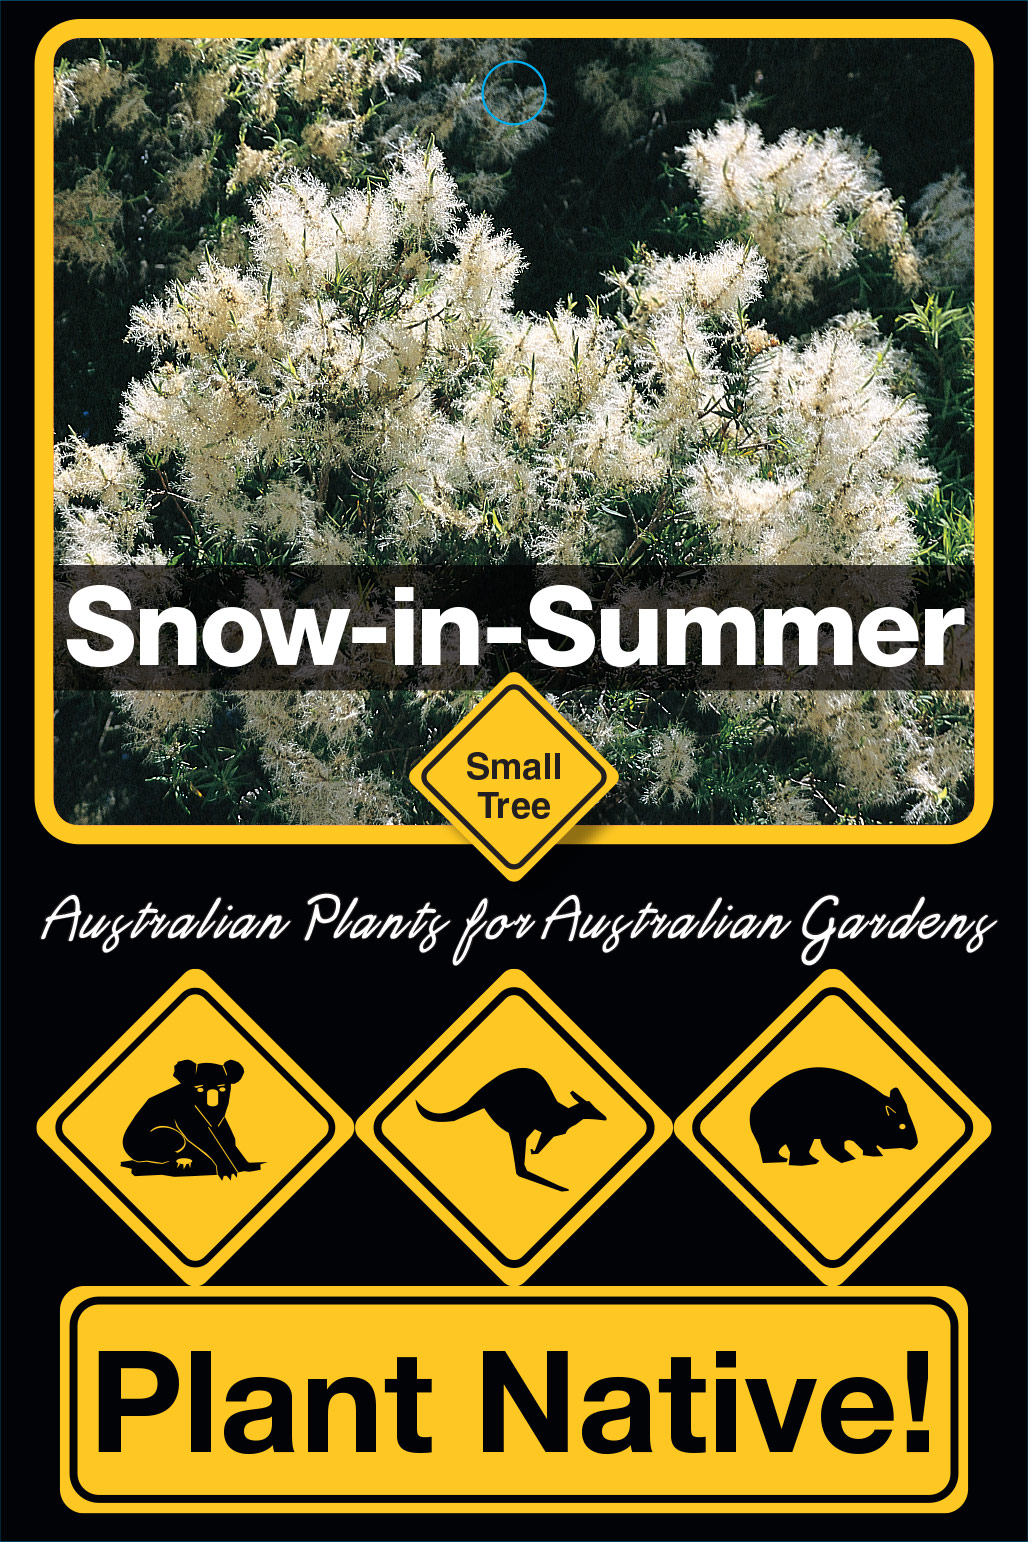 Snow-in-Summer - Plant Native!